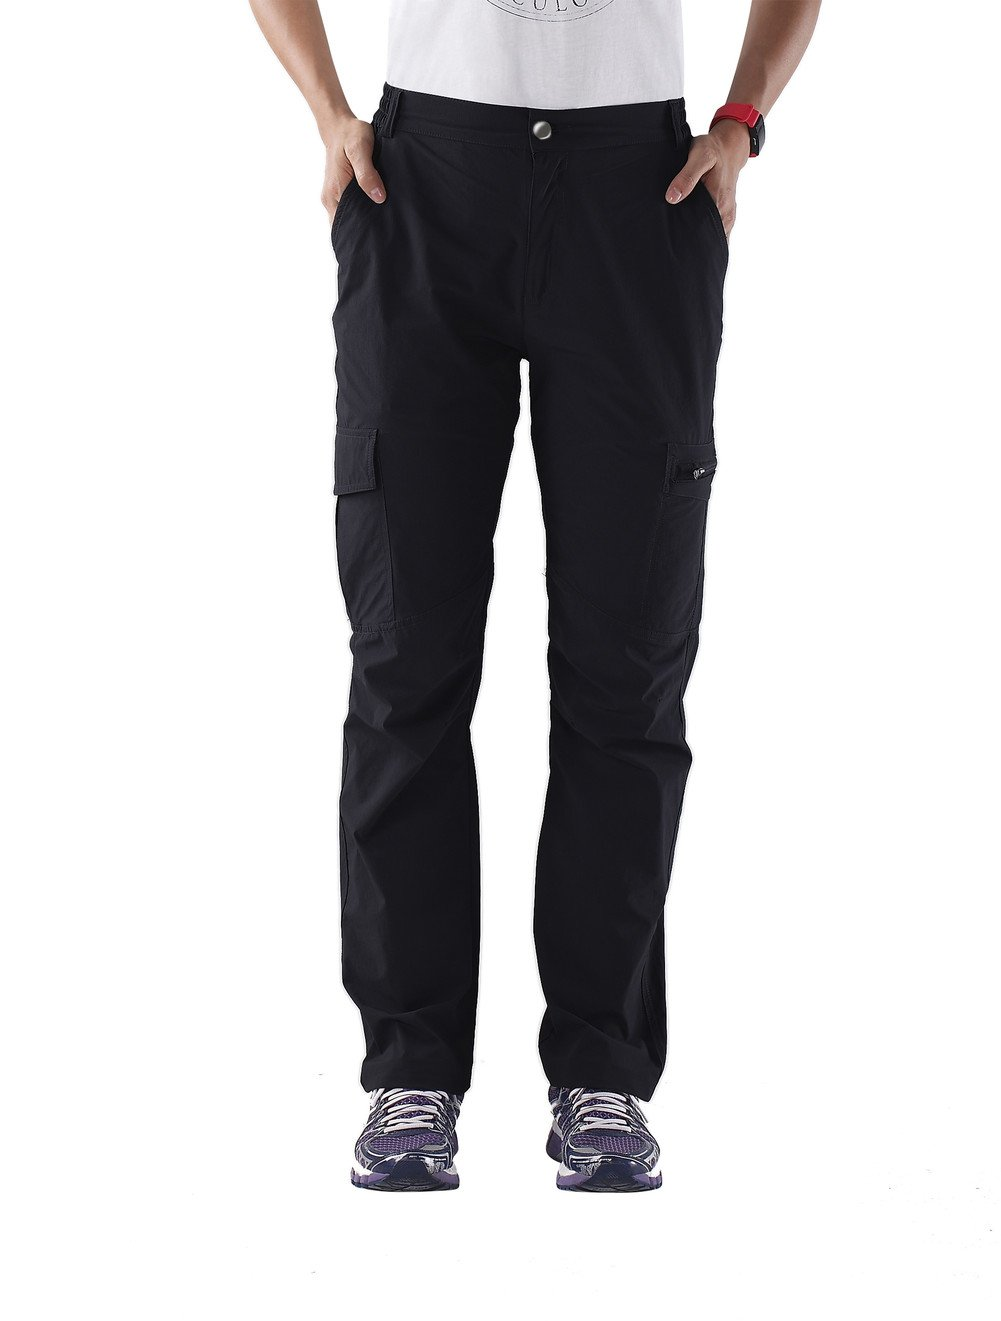 Nonwe Women's Water-Resistant Outdoor Tactical Pants Black XL/30.5'' Inseam by Nonwe